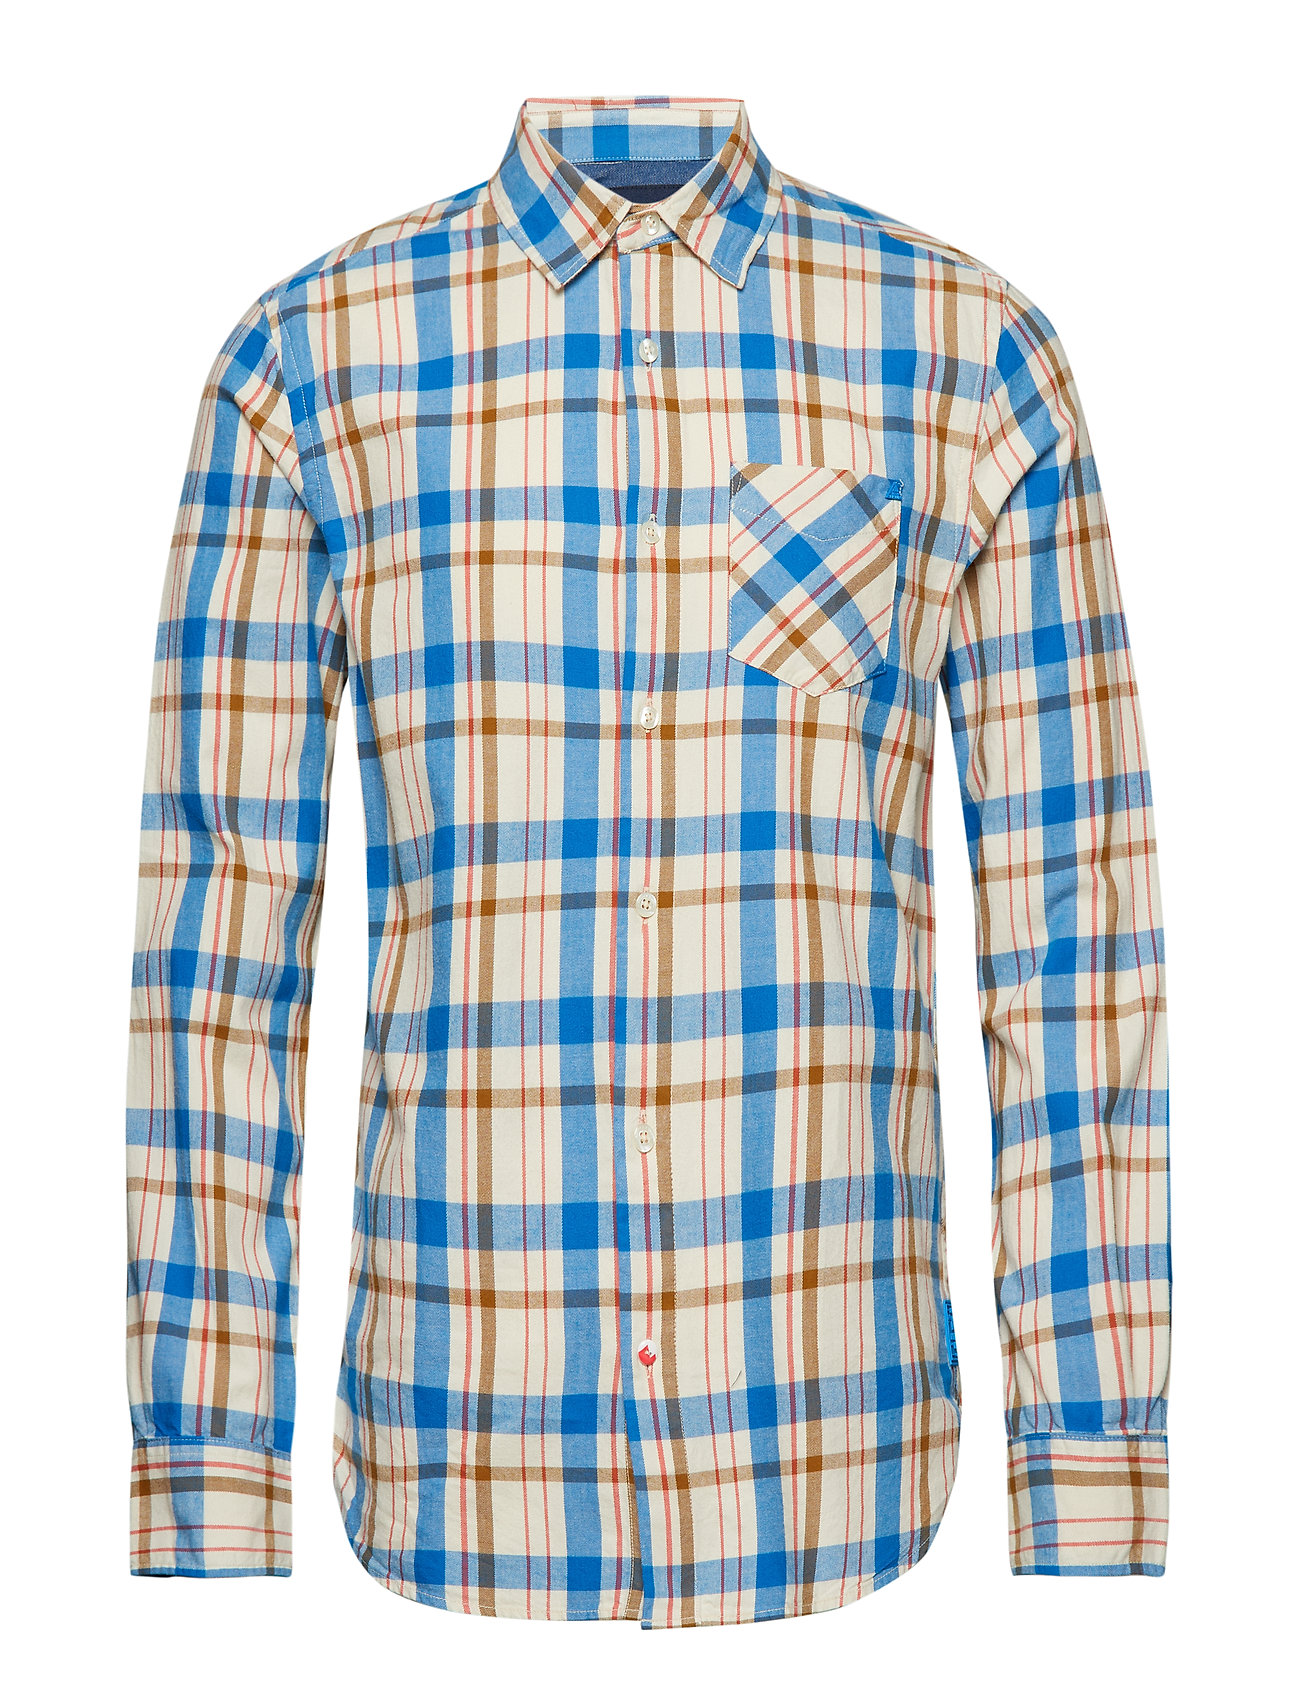 Scotch & Soda Ams Blauw shirt - COMBO B